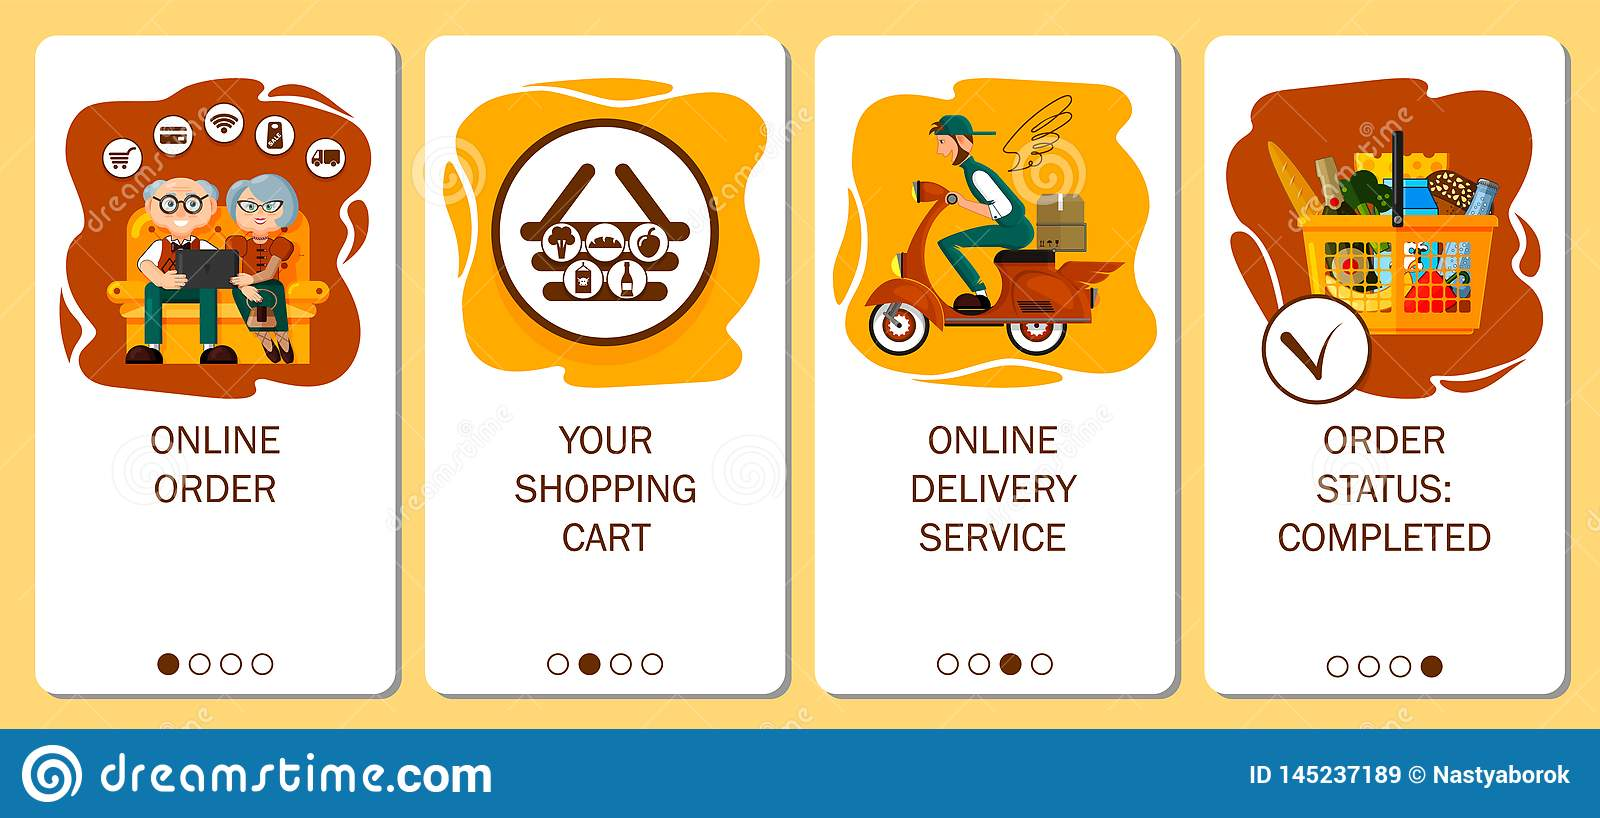 Design of mobile app to onboarding screens. Online order service, food delivery, order grocery in online store